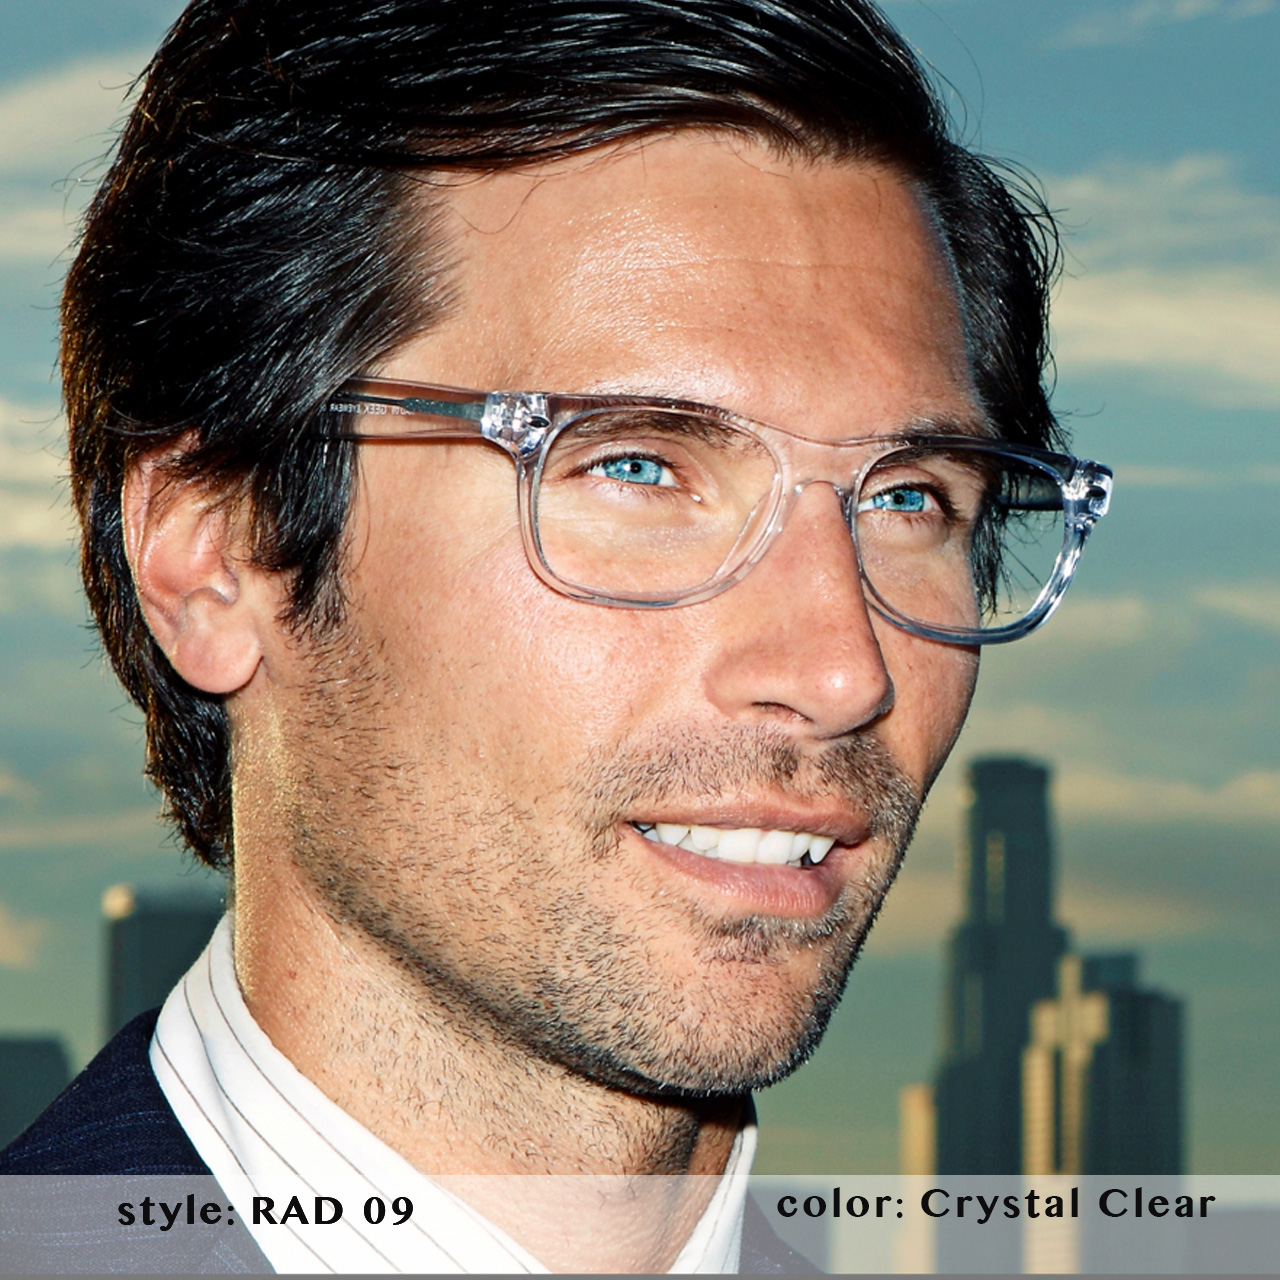 GEEK Eyewear® Rx Eyeglasses style RAD 09 | Sunglasses | Celebrities ...